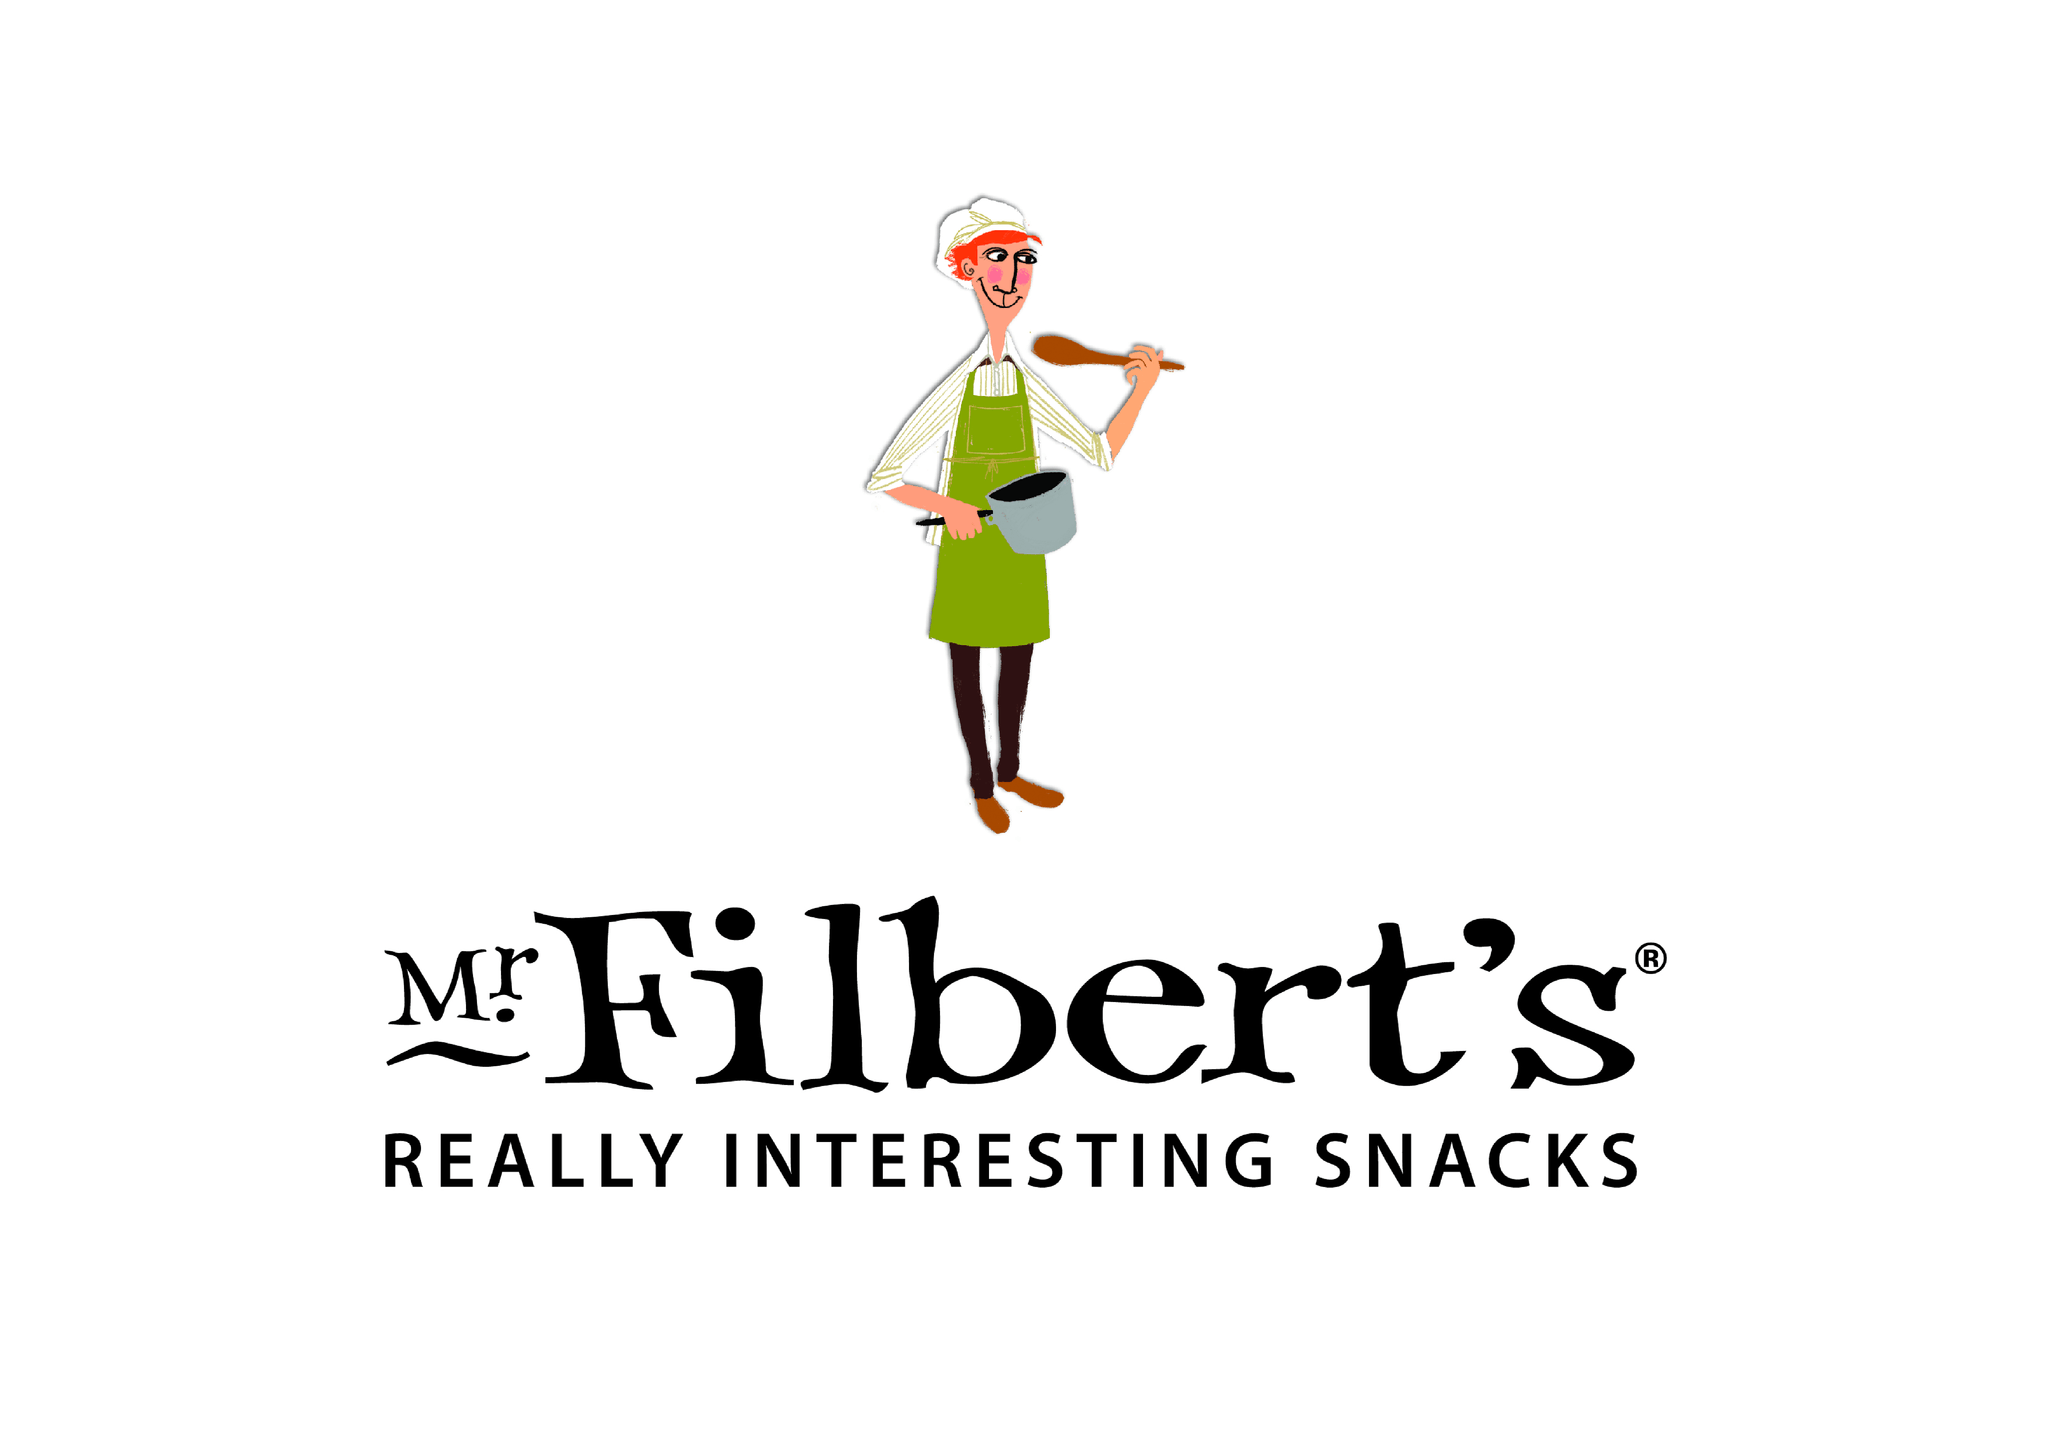 Mr Filbert's Fine Foods